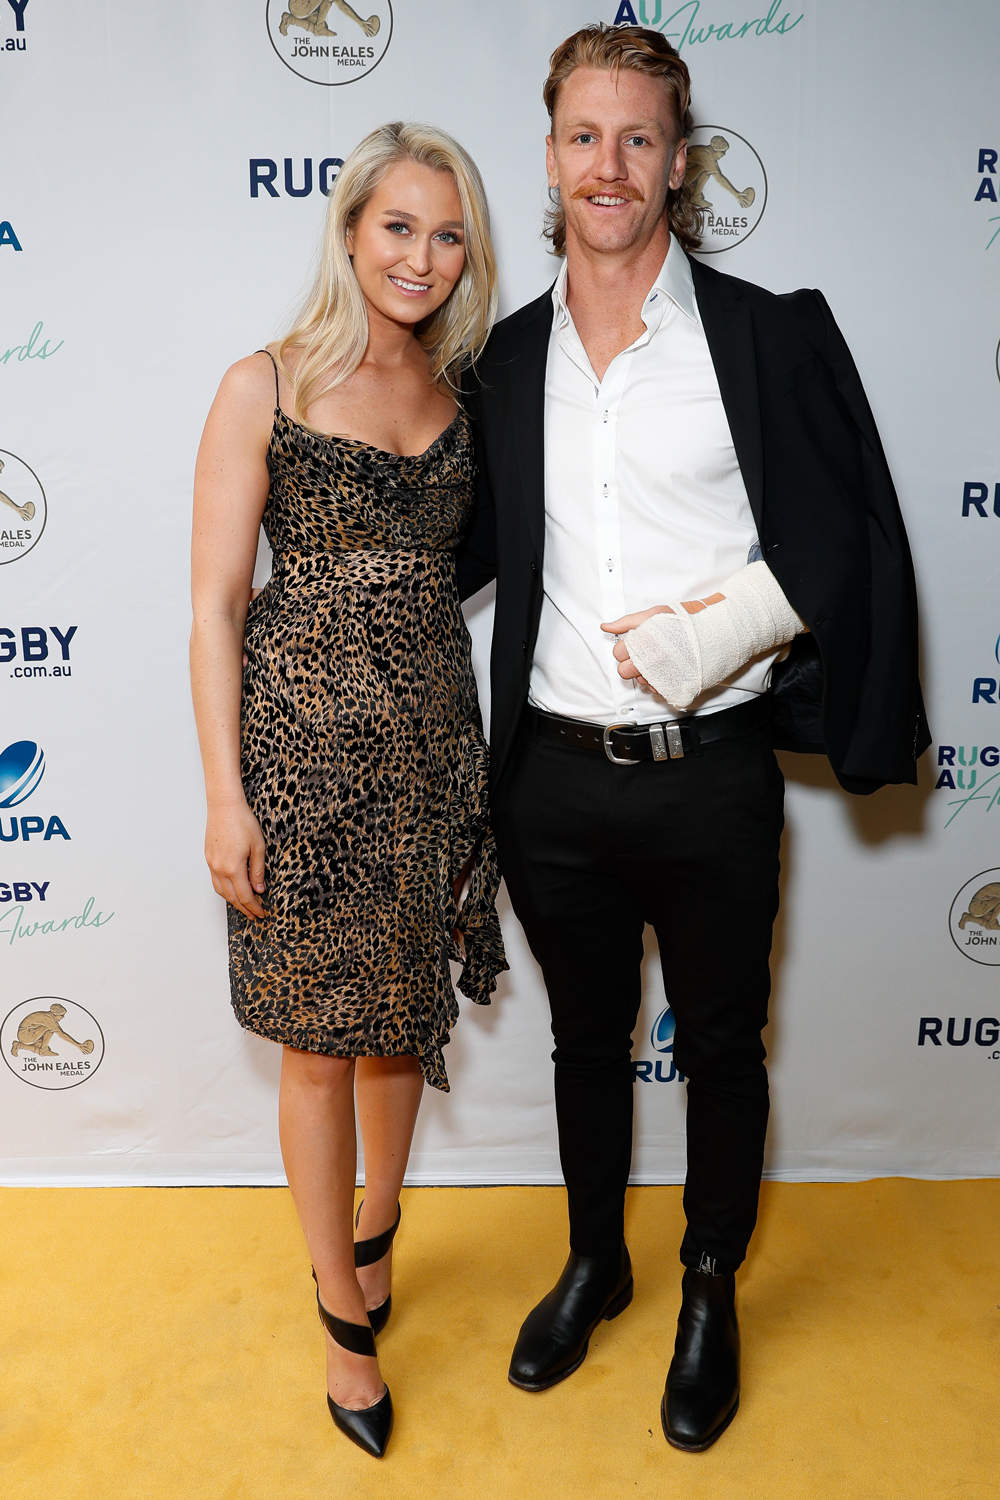 Ben O'Donnell and partner Caitlin Milne at the Rugby Australia Awards. Photo: Getty Images